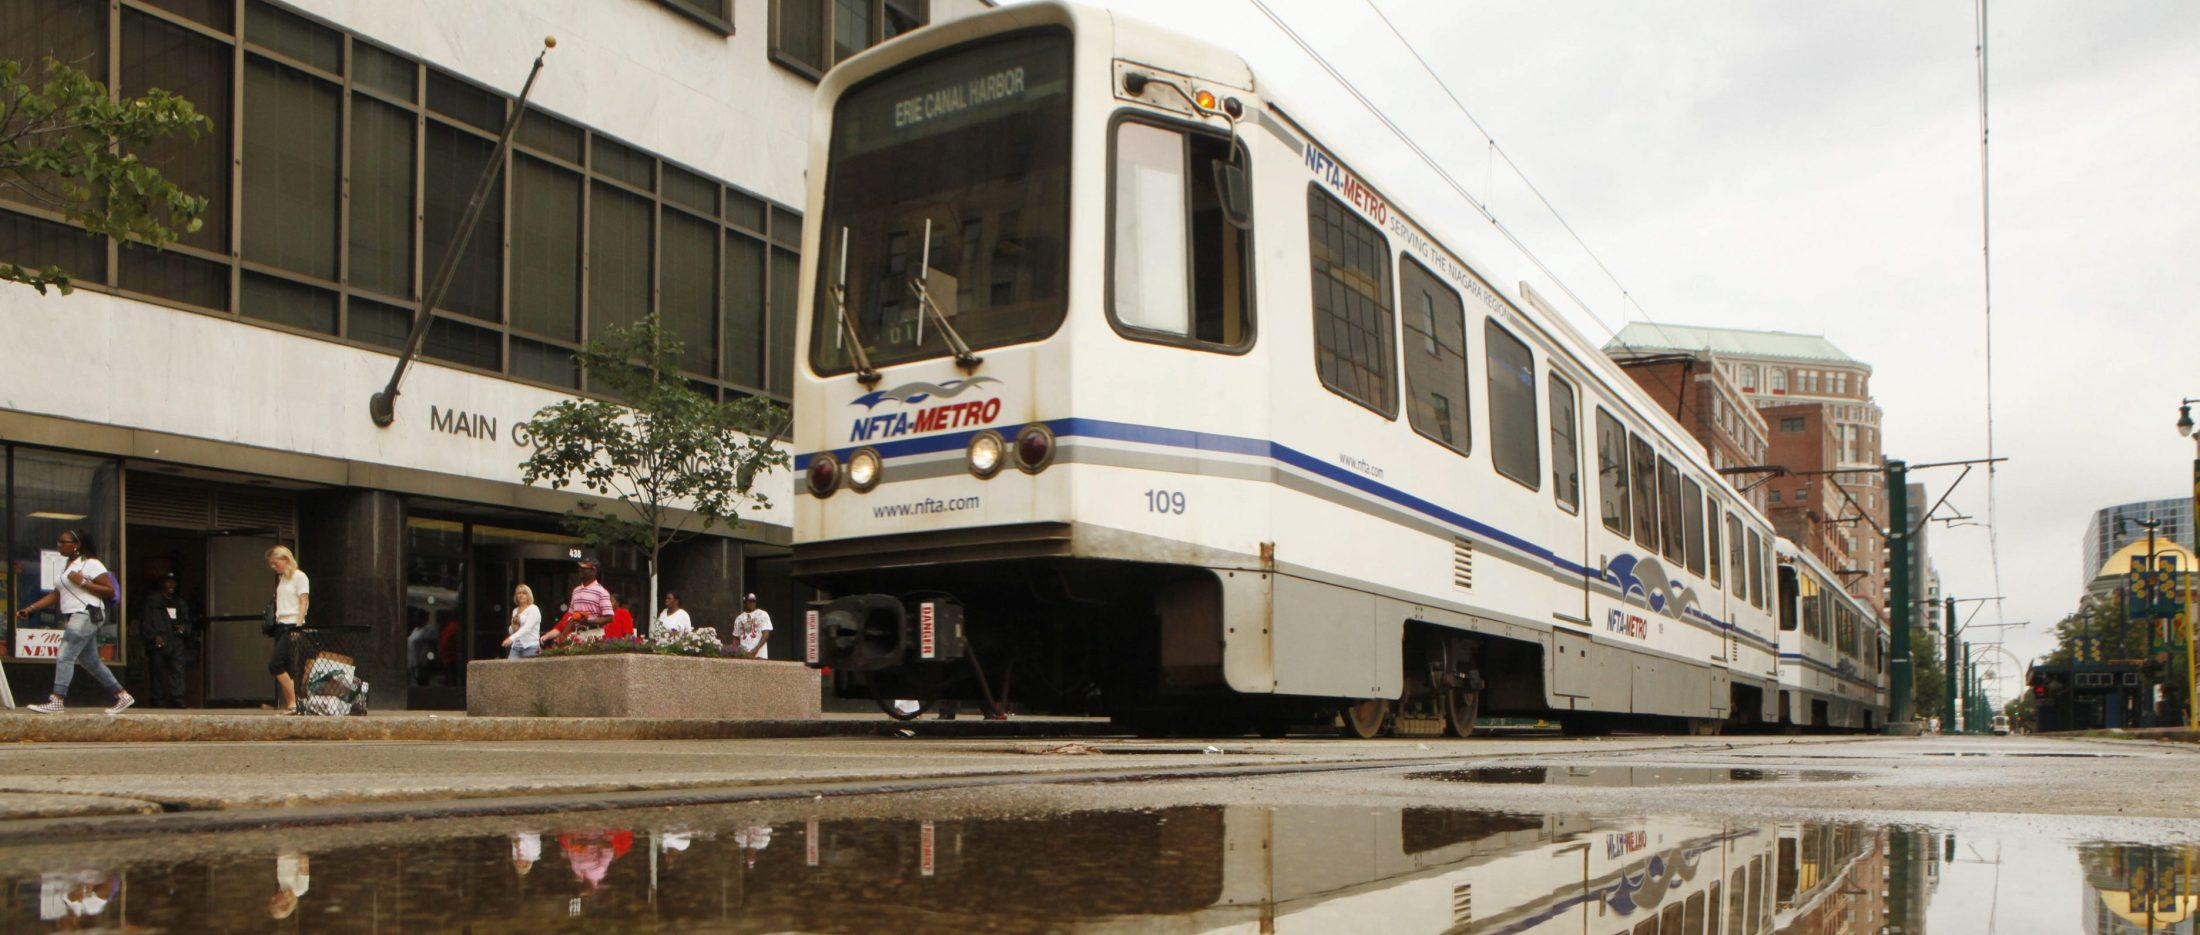 A new plan would extend Metro Rail to the University at Buffalo's North Campus and beyond via Niagara Falls Boulevard instead of Bailey Avenue. (Derek Gee/News file photo)